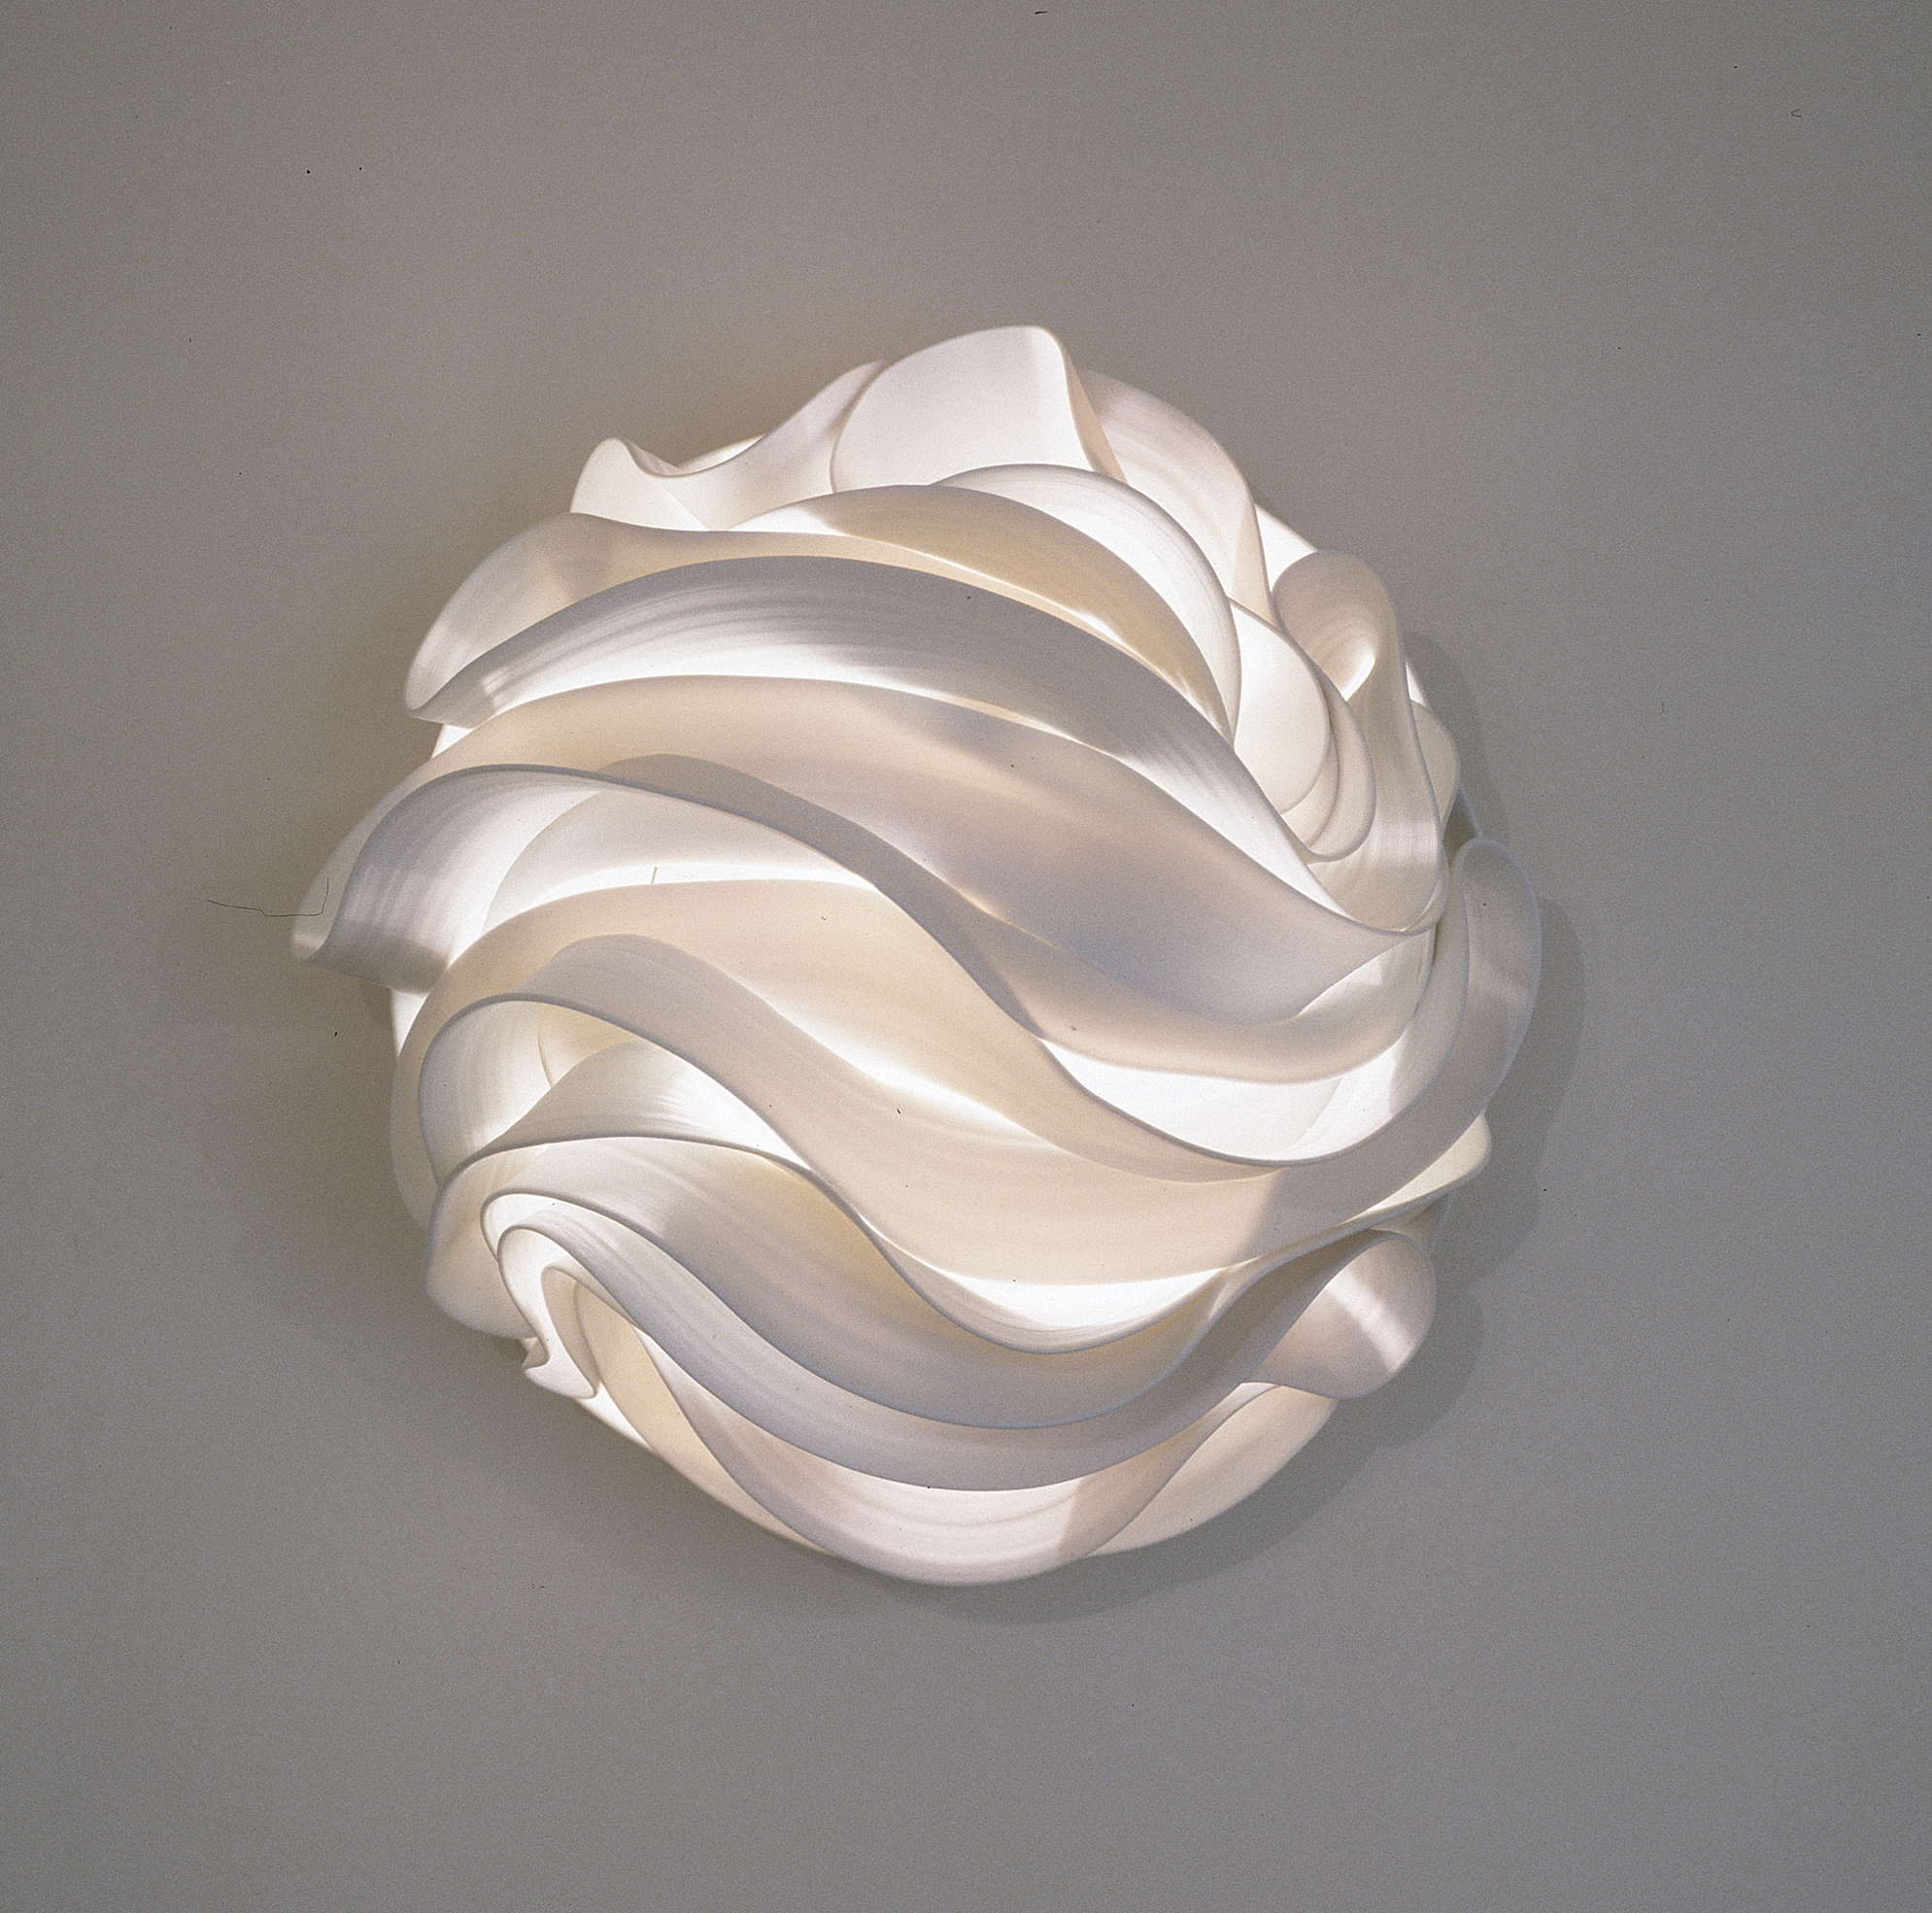 35. Waves Wall Light.